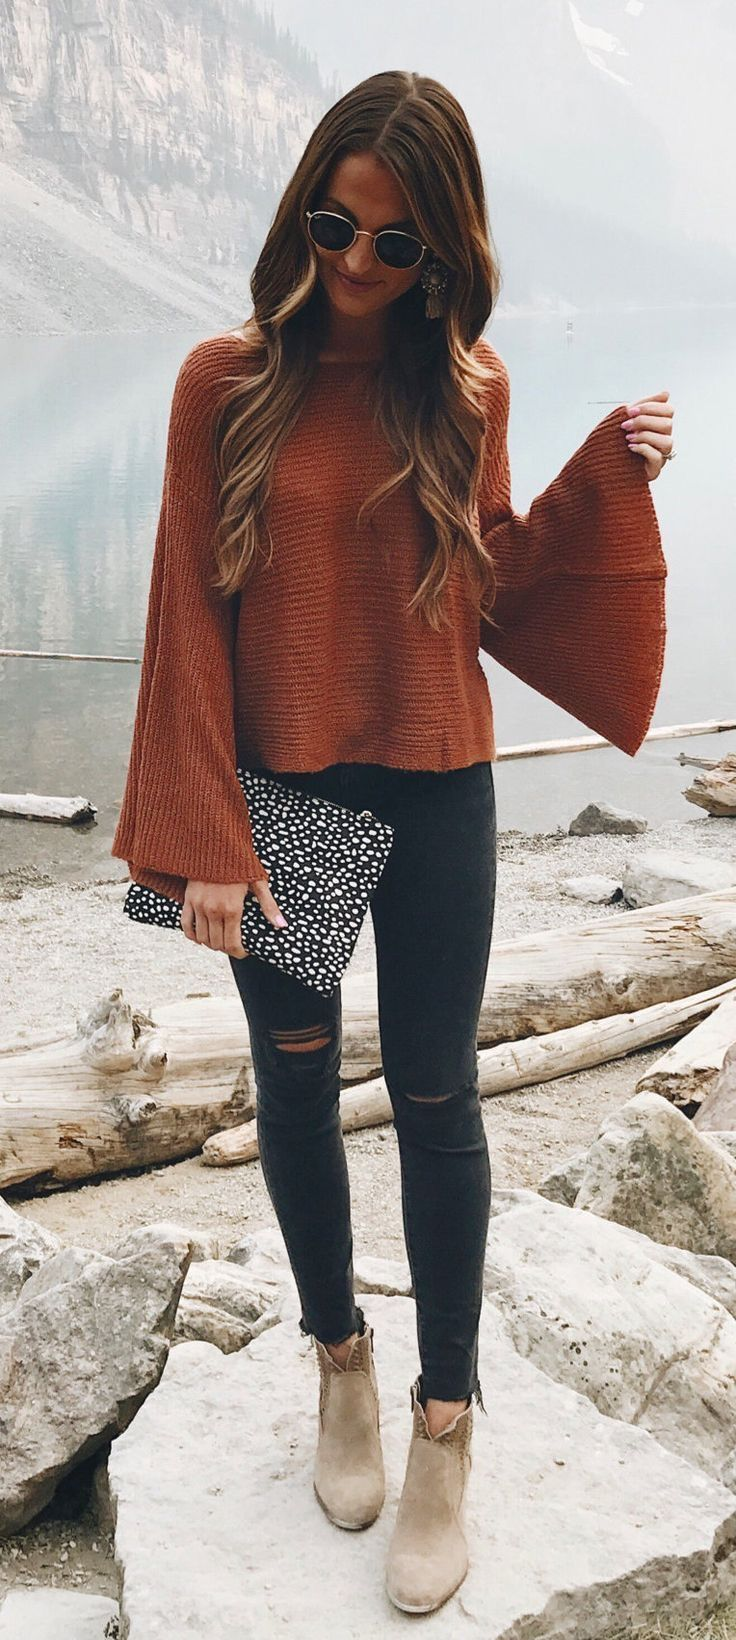 outfits cute fall orange outfit winter jeans tops burnt wear autumn brown sweater own clothes thanksgiving dress jealous friends chic